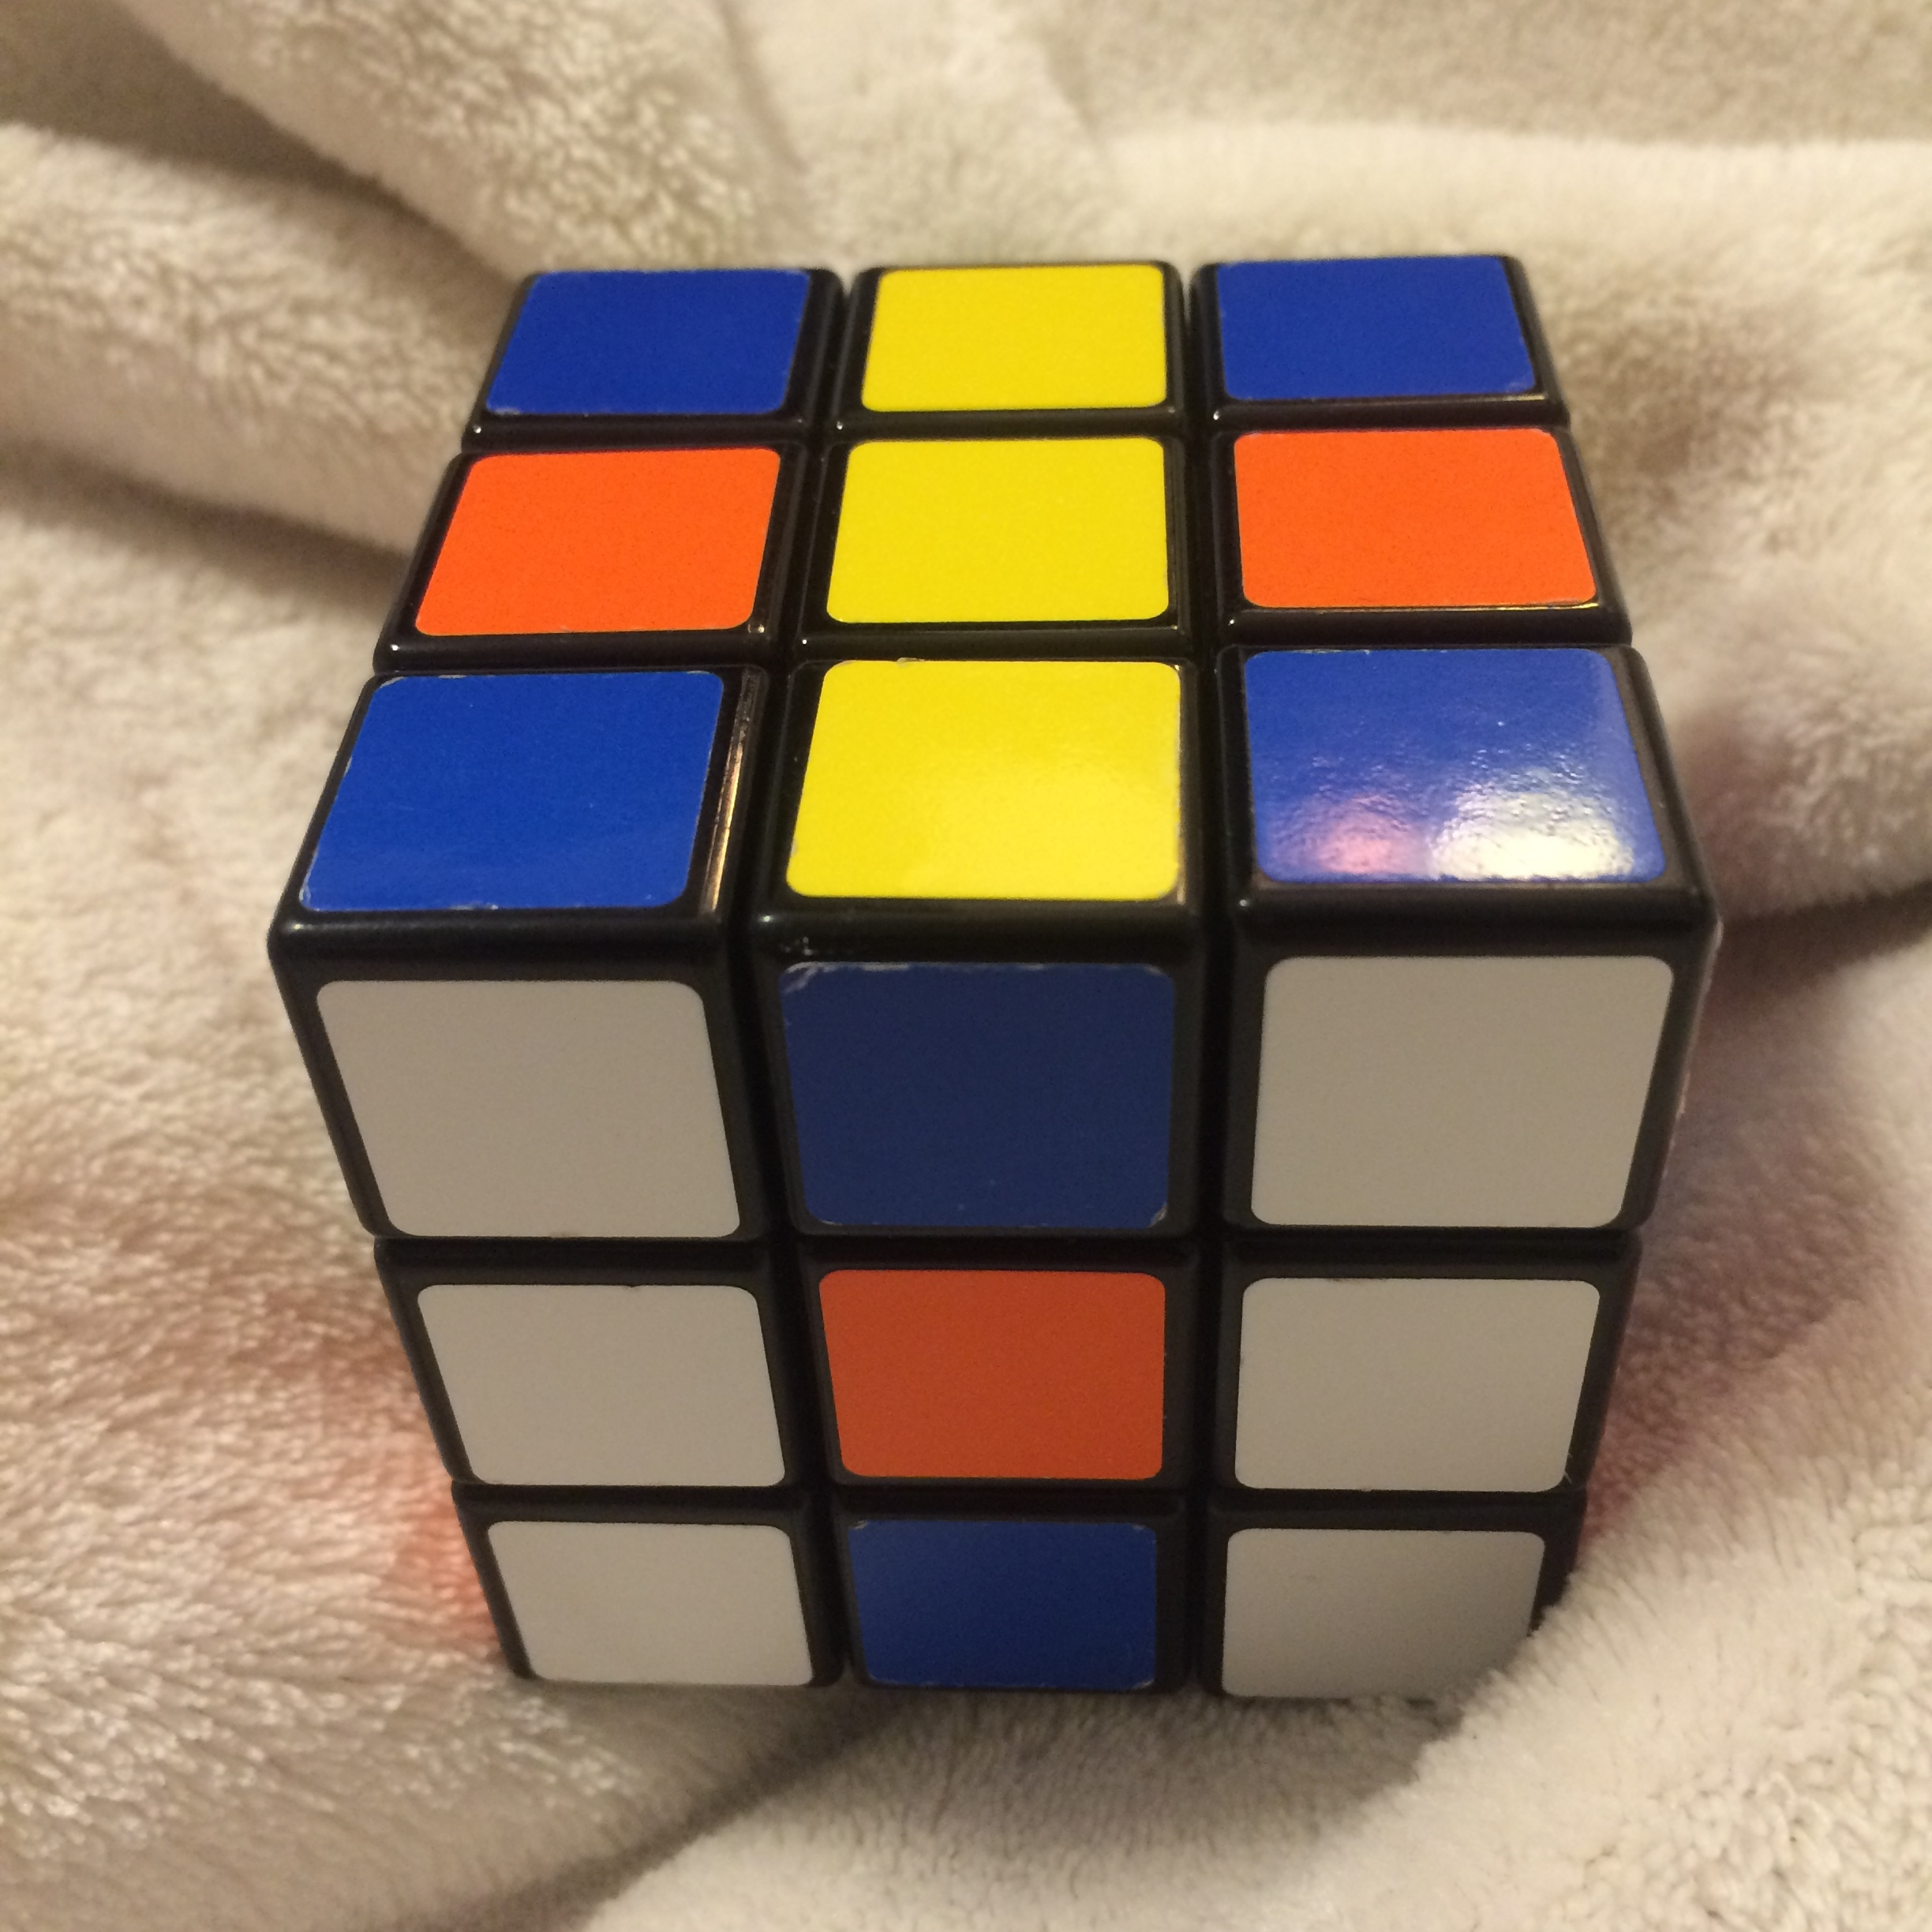 Center Cube Swap | How To Solve A Rubik's Cube